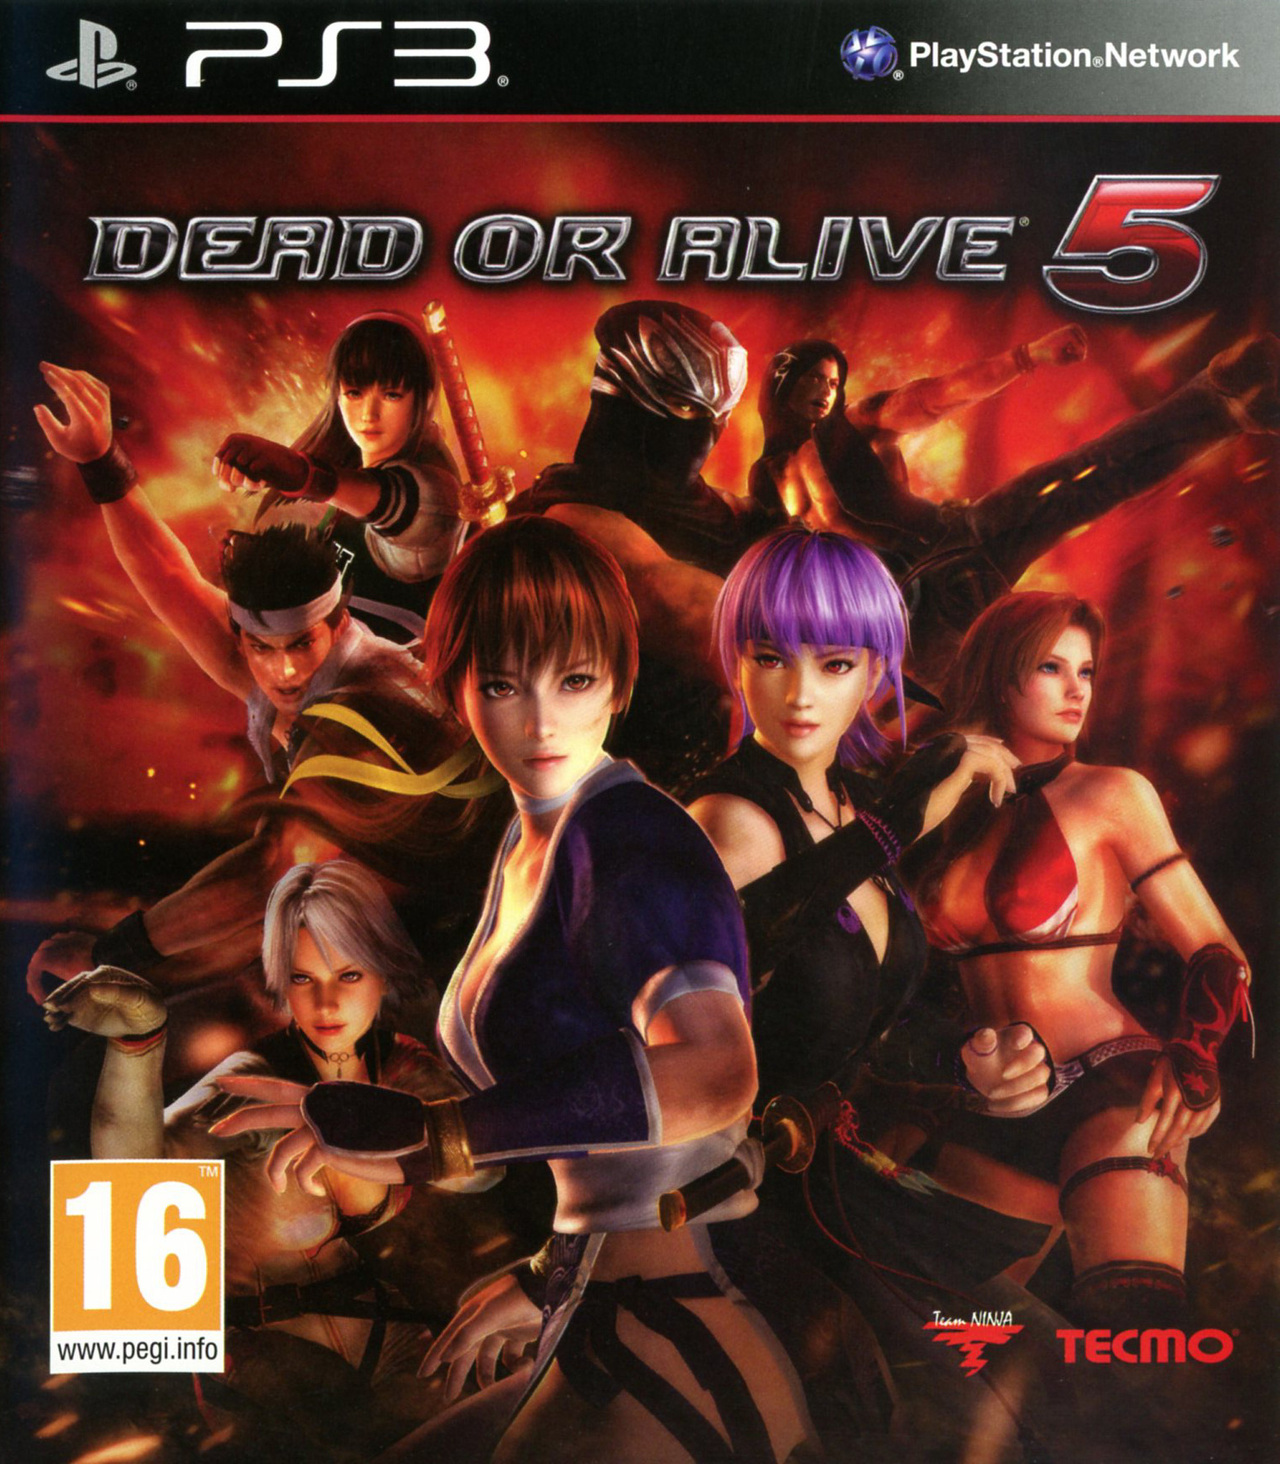 PS3 Dead or Alive 5 BLES01623 EBOOT Fix for CFW 3.55